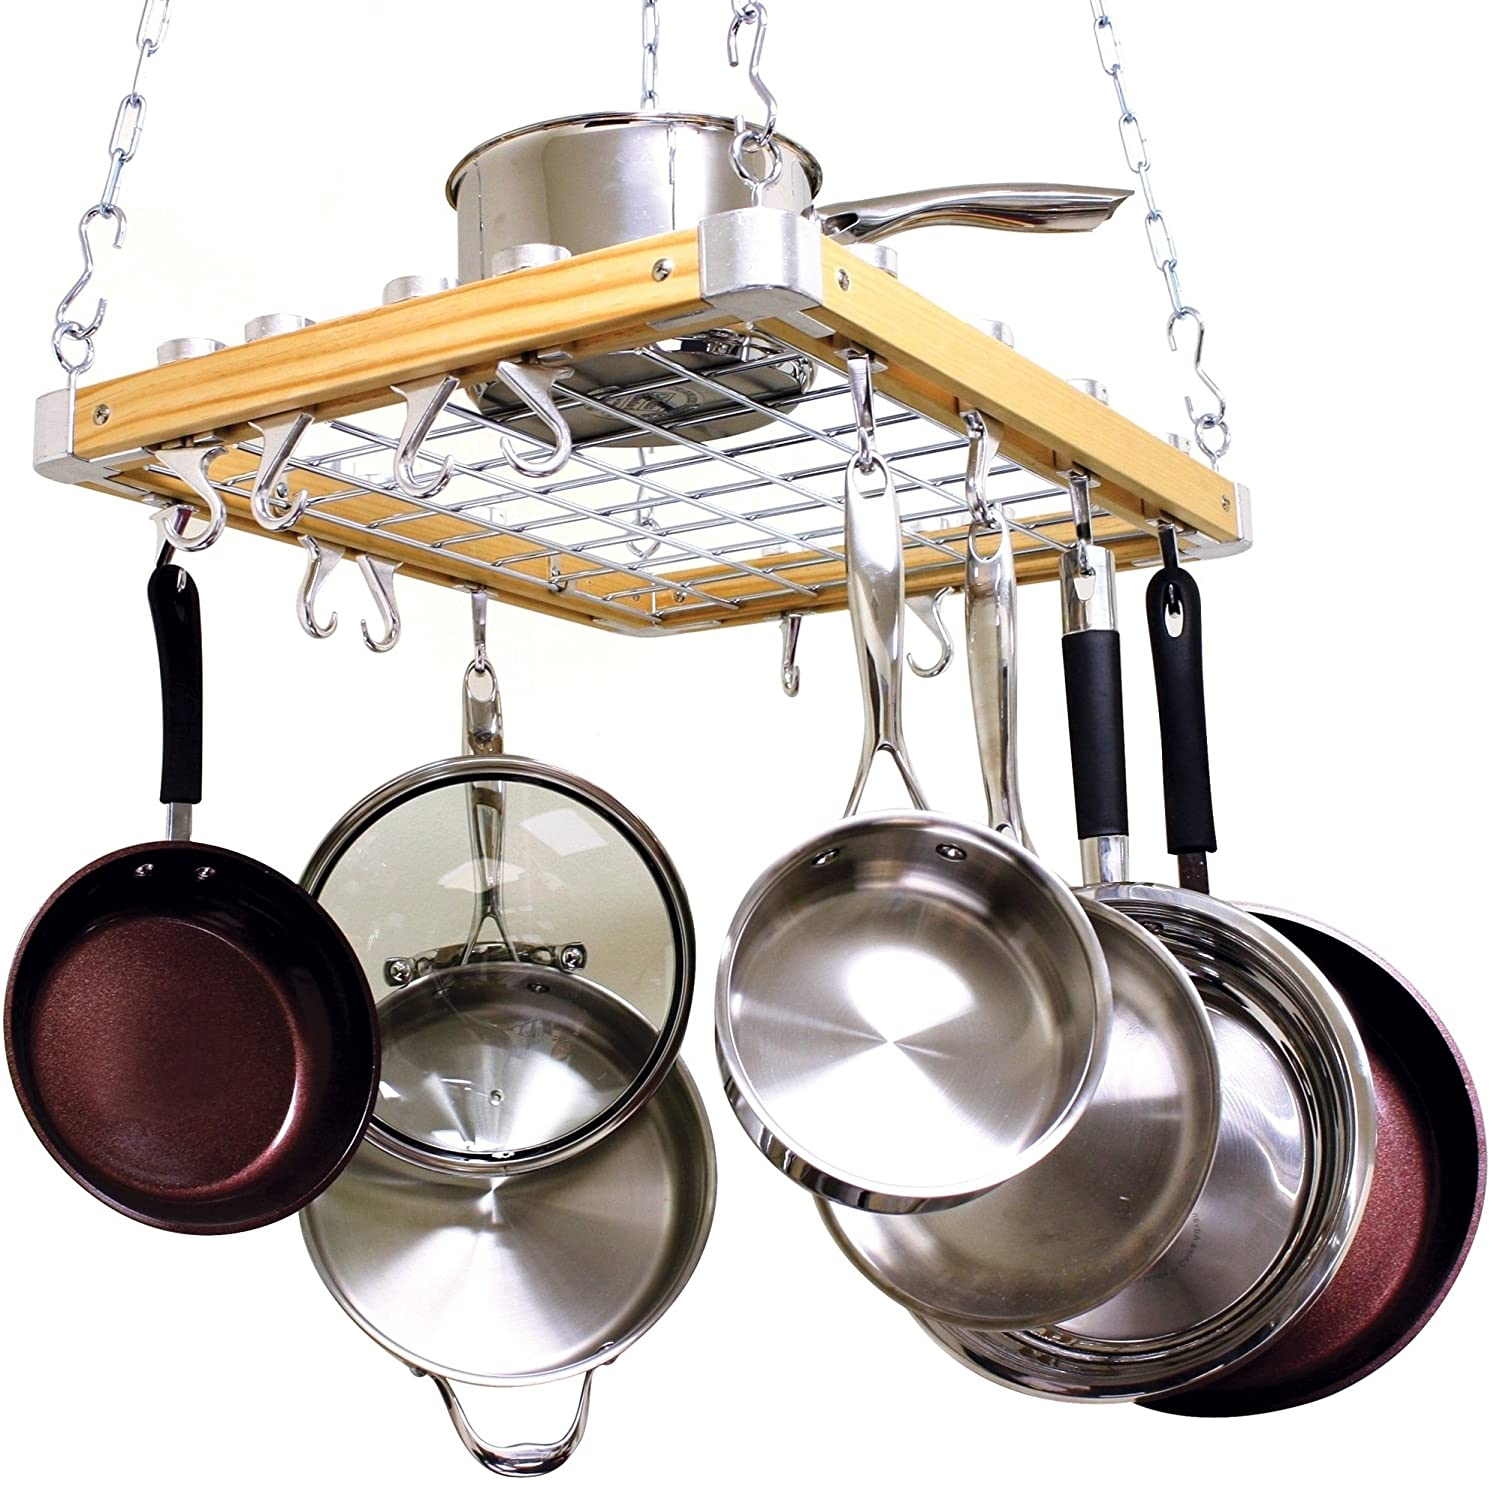 dining pot cooks kitchen com dp rack wooden standard mounted ceiling racks amazon pan inch by